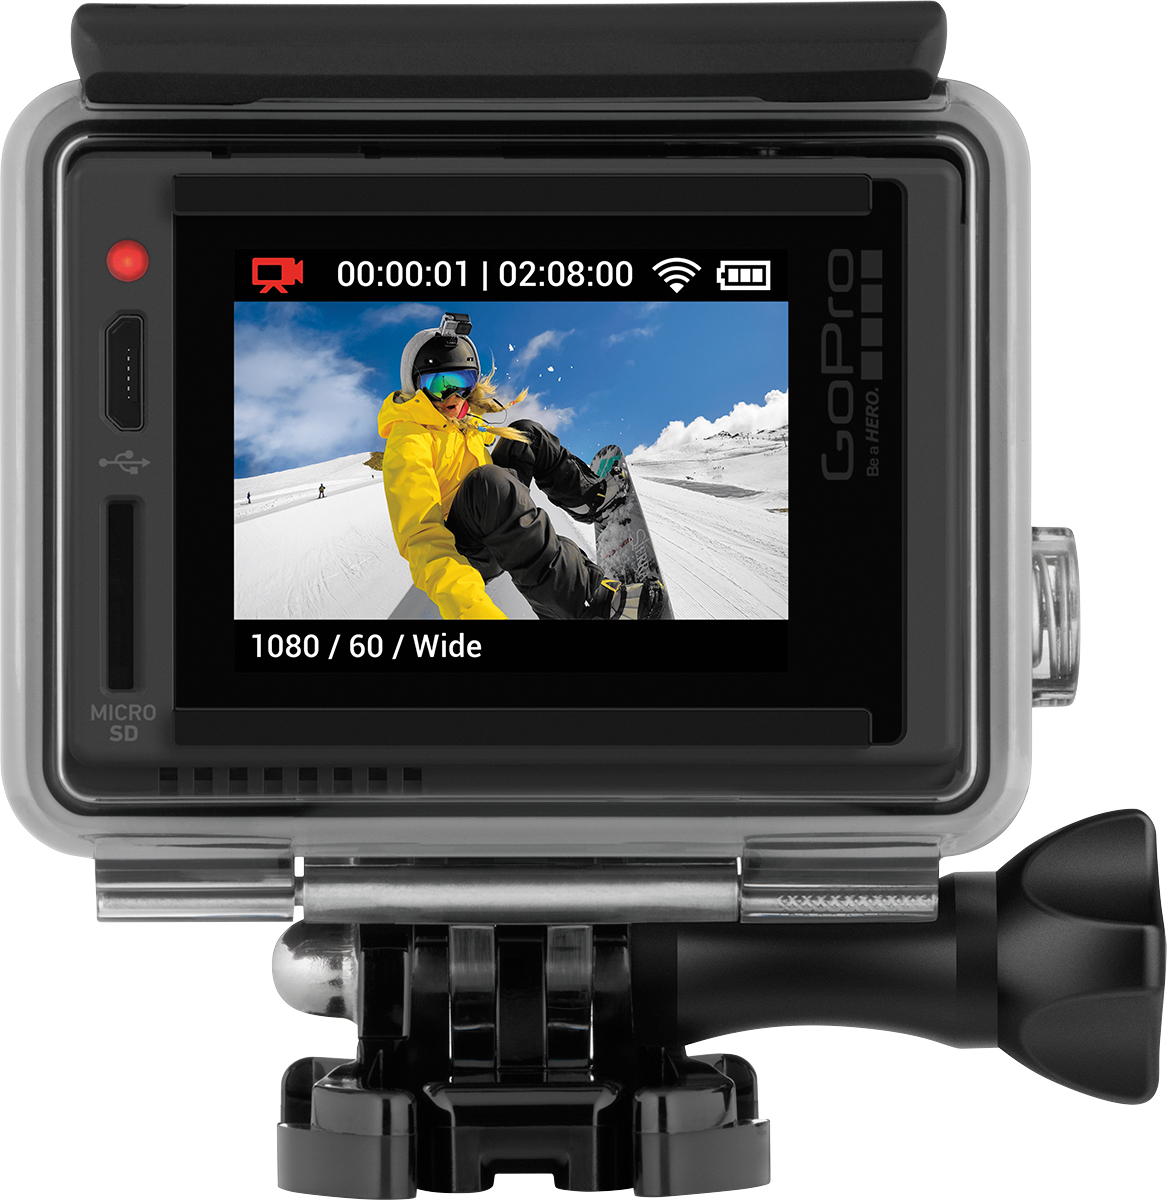 New @GoPro HERO+ LCD at @BestBuy (Plus Special Offers) #GoProatBestBuy #ad